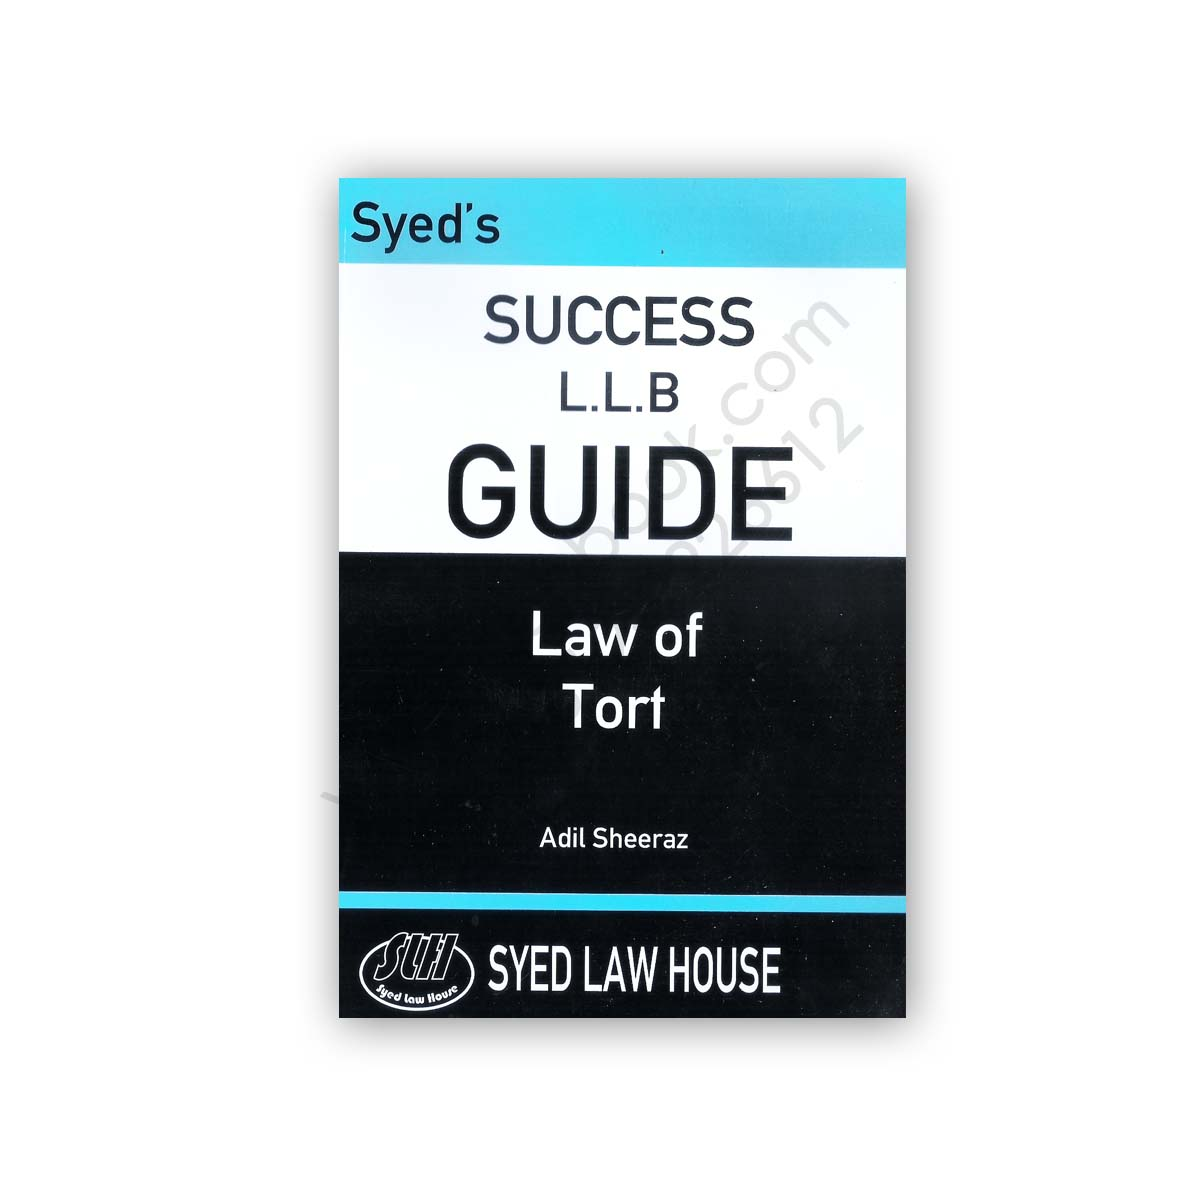 syeds success llb guide law of tort adil sheeraz